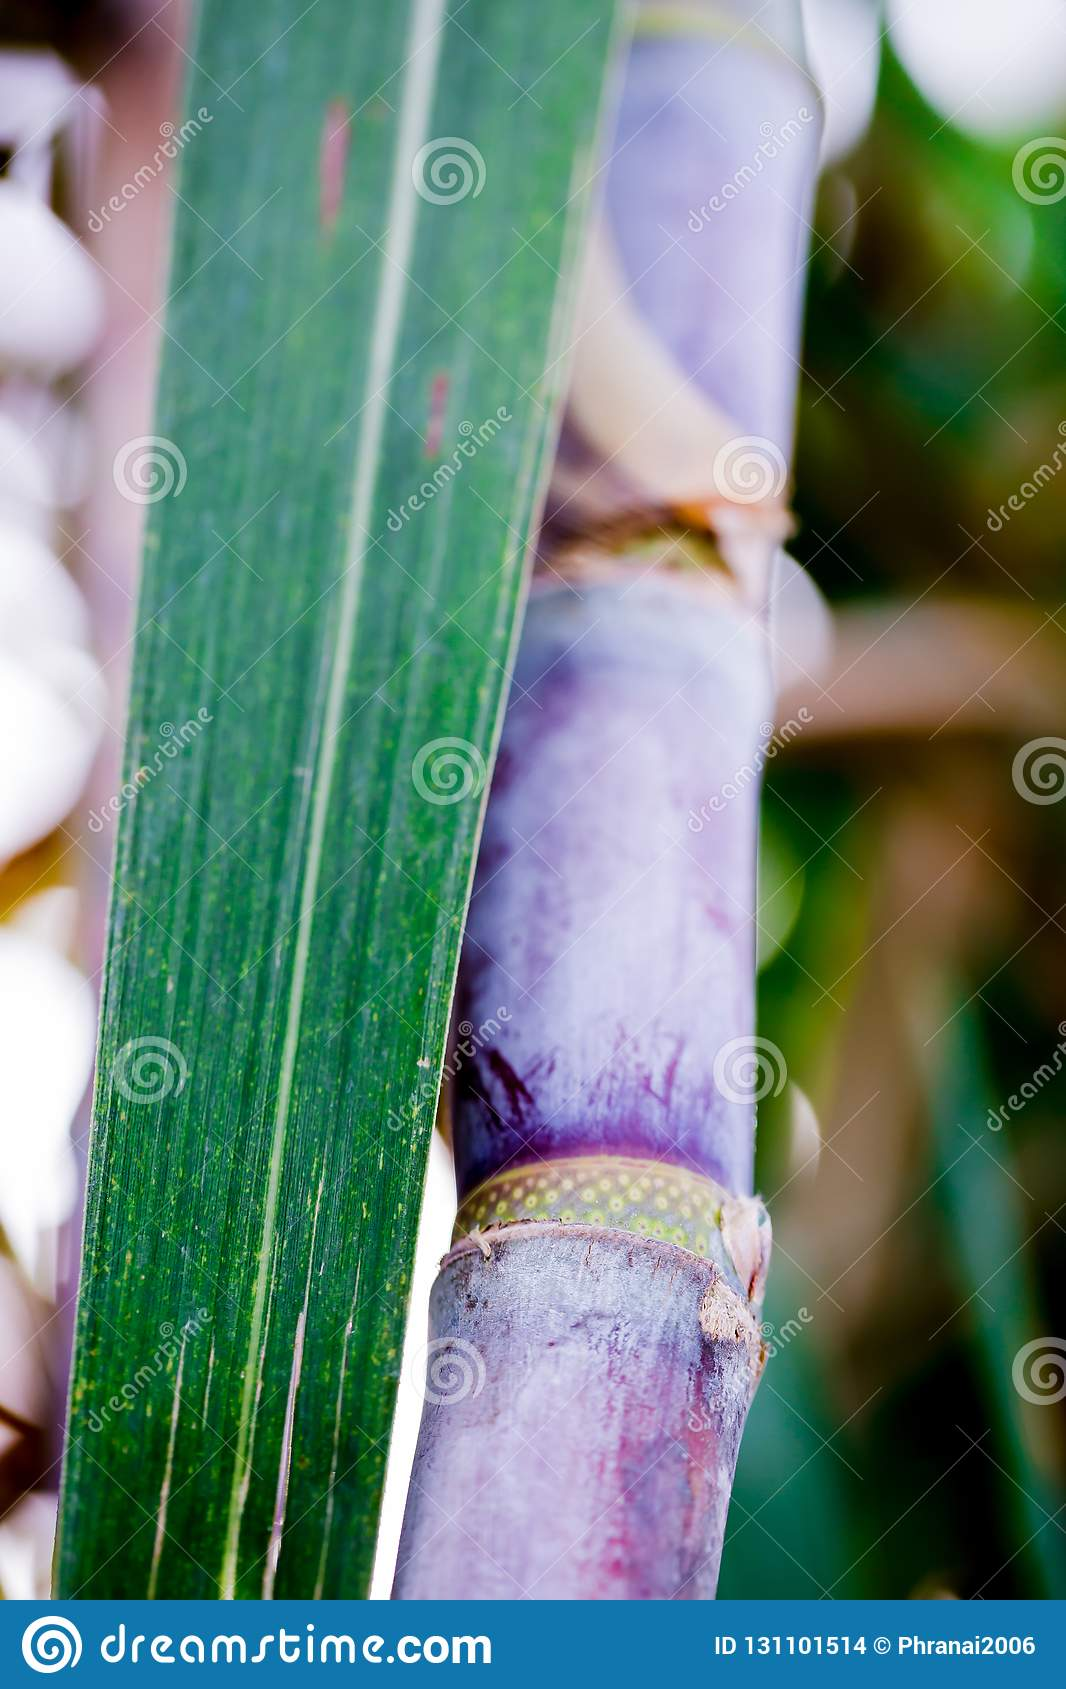 Sugar cane plants in growth at field.